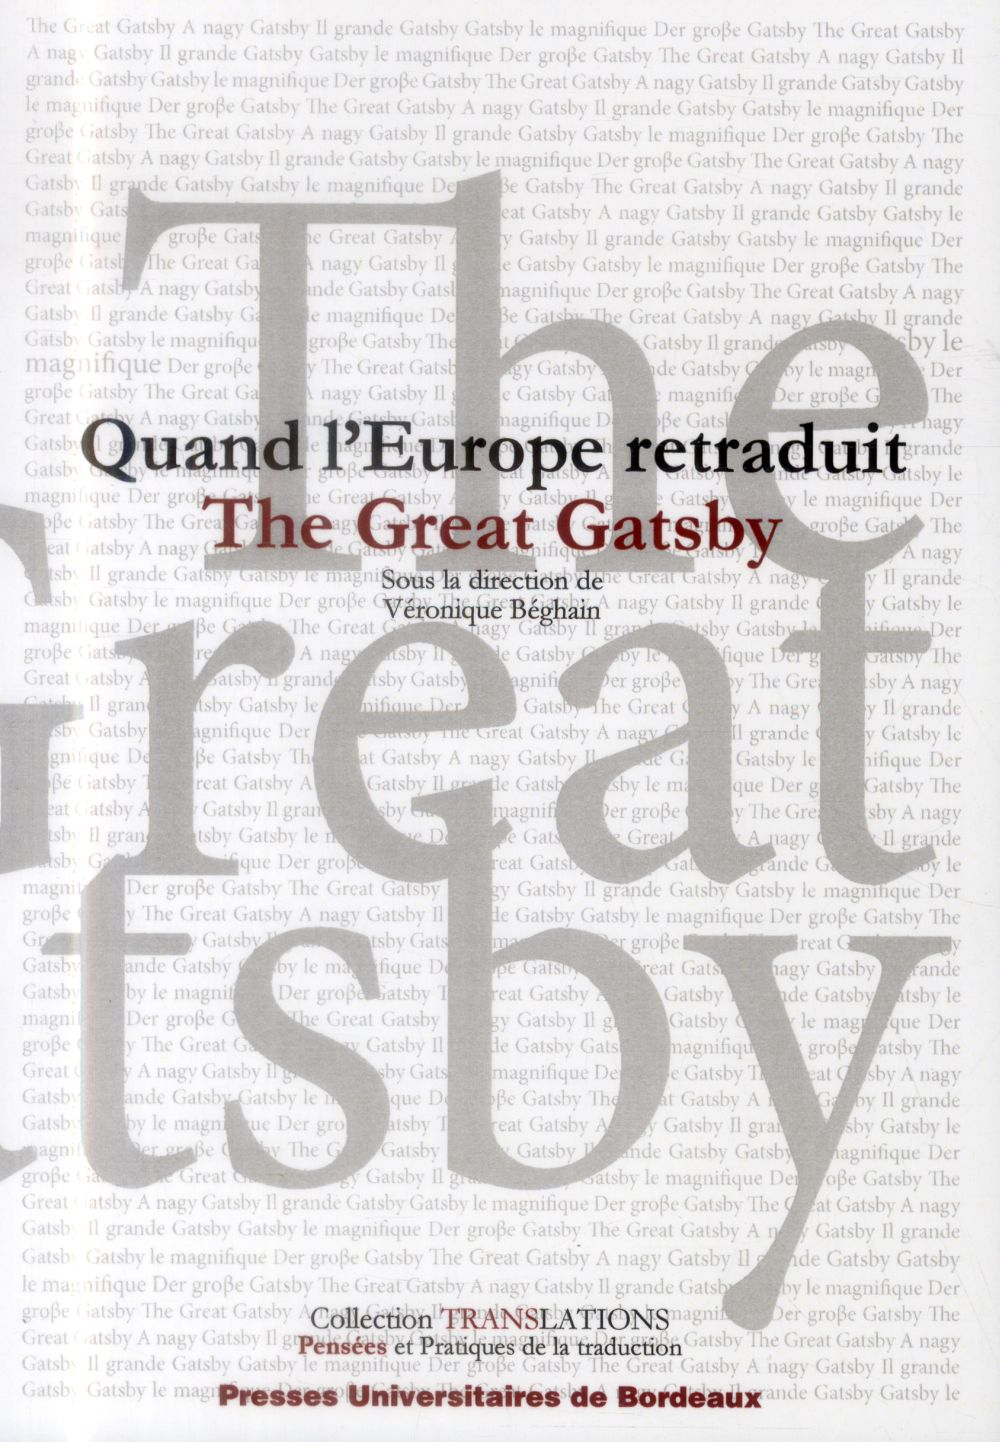 QUAND L'EUROPE RETRADUIT THE GREAT GATSBY